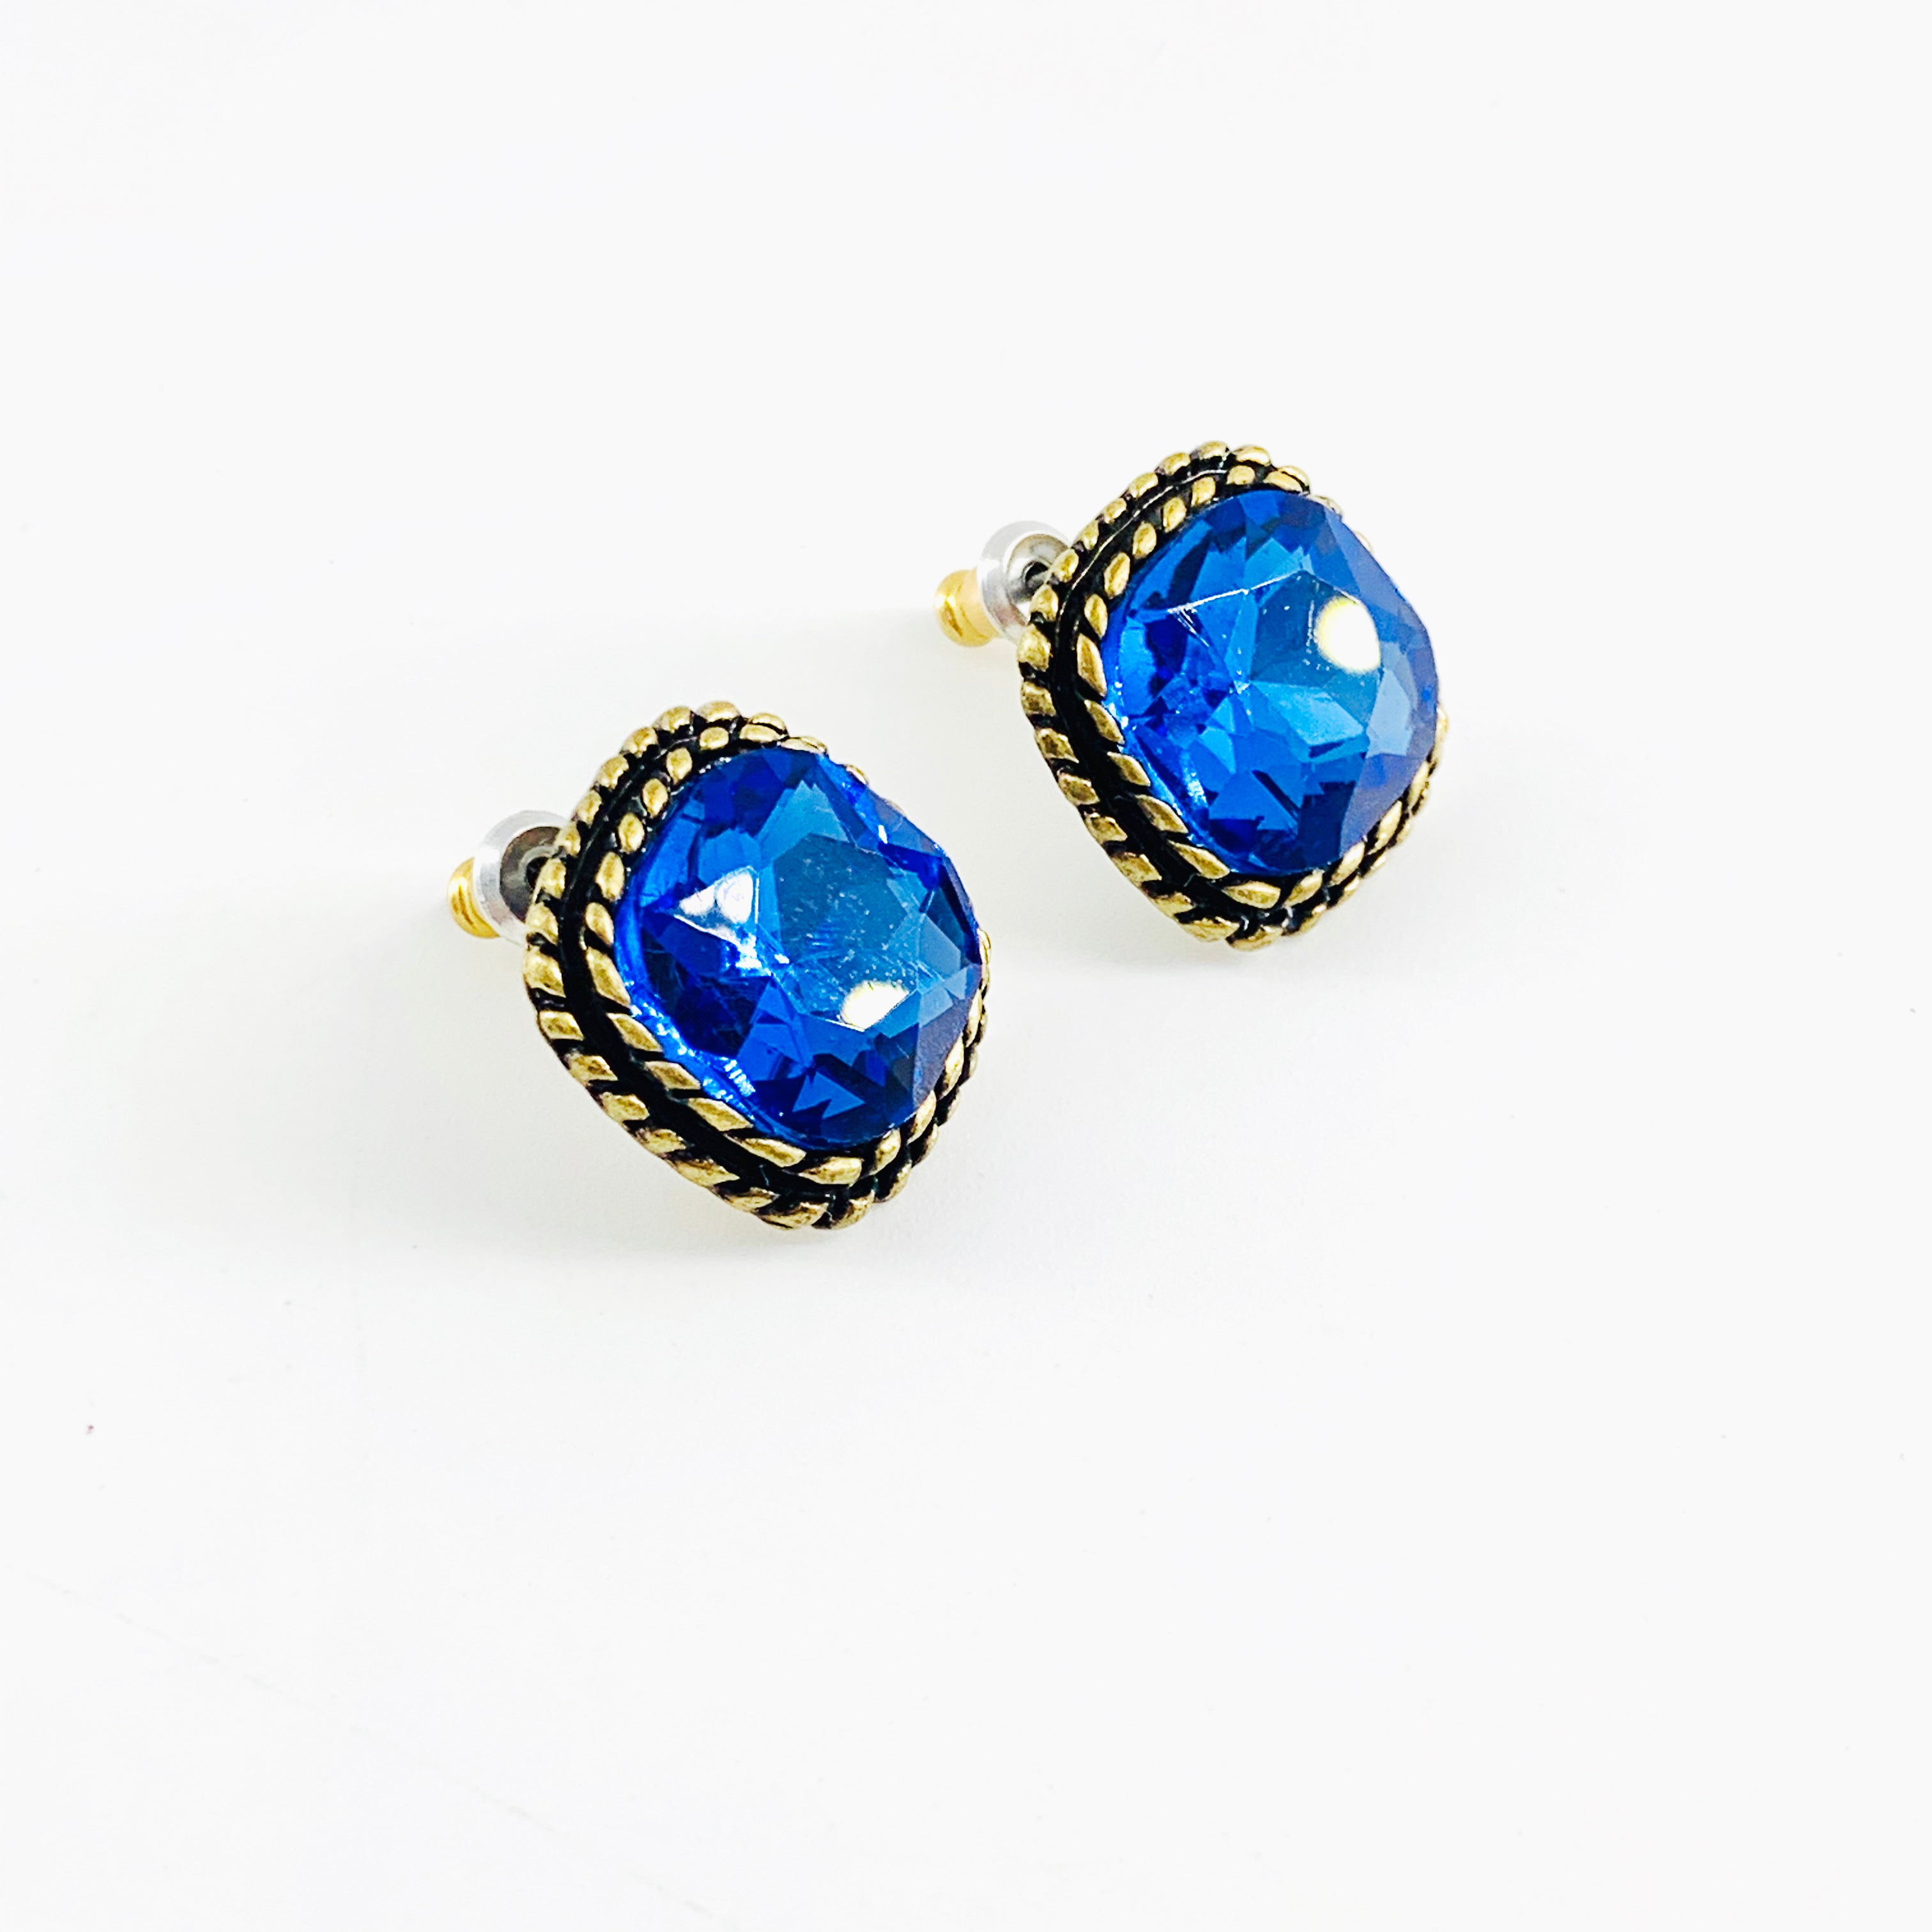 Vintage-styled earrings with blue crystal